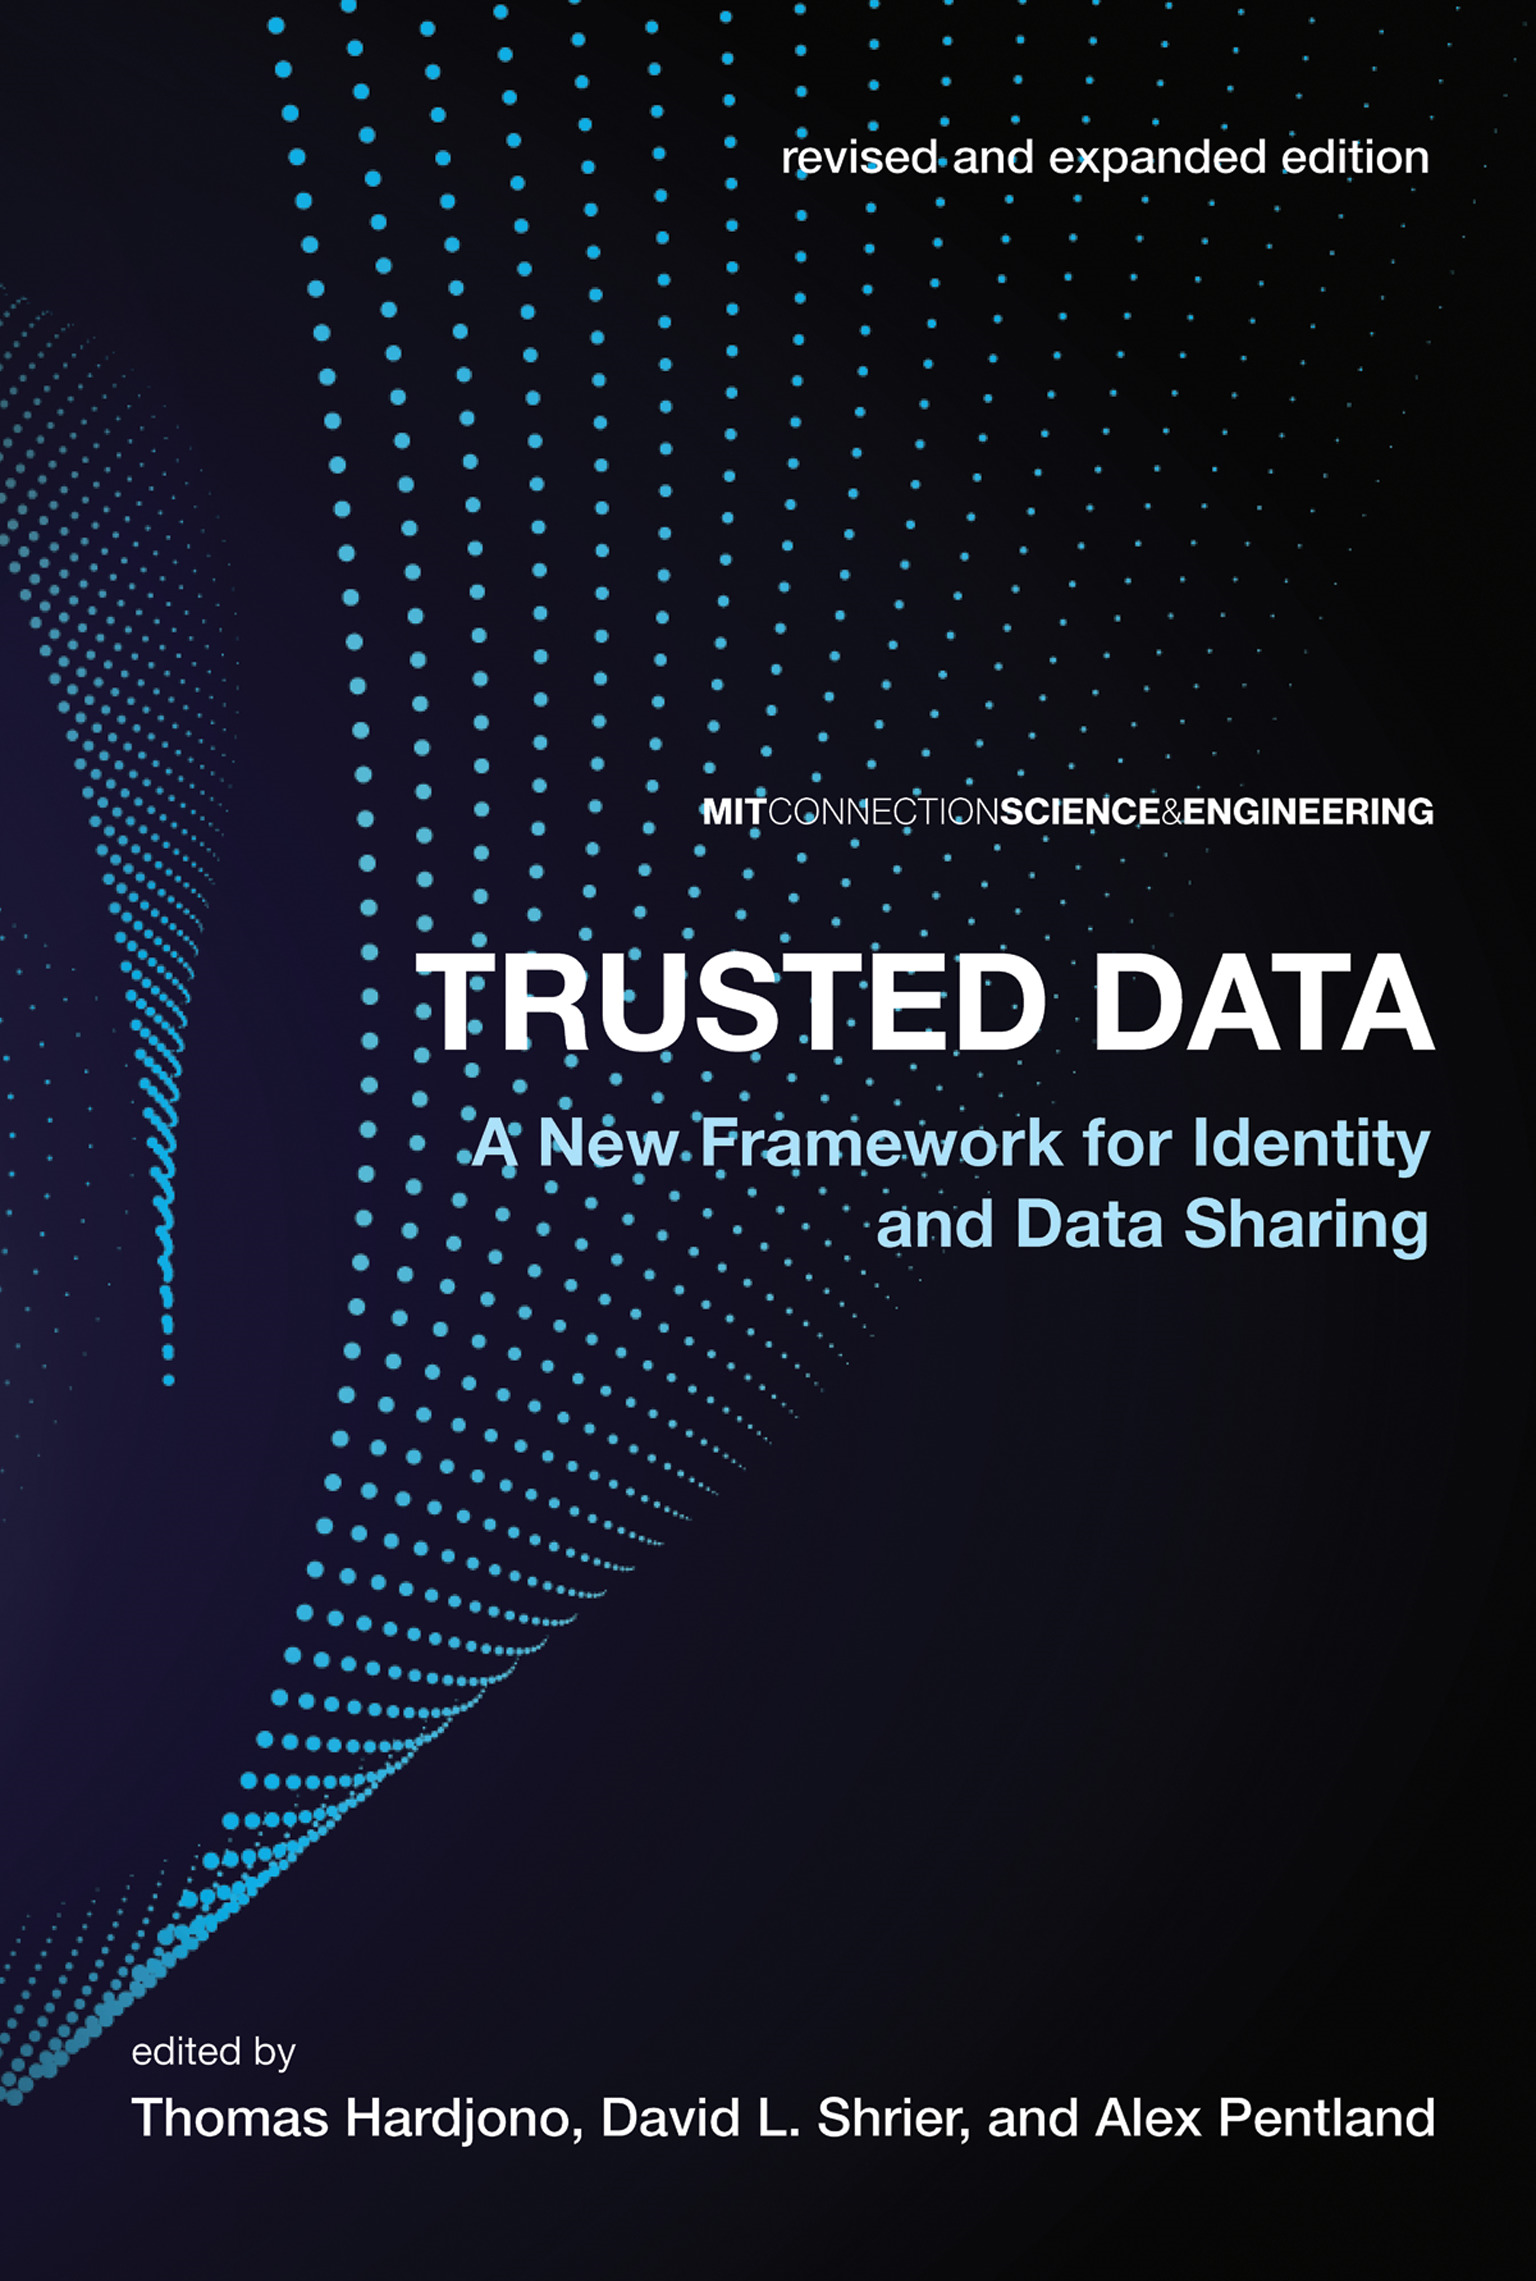 Trusted Data, revised and expanded edition